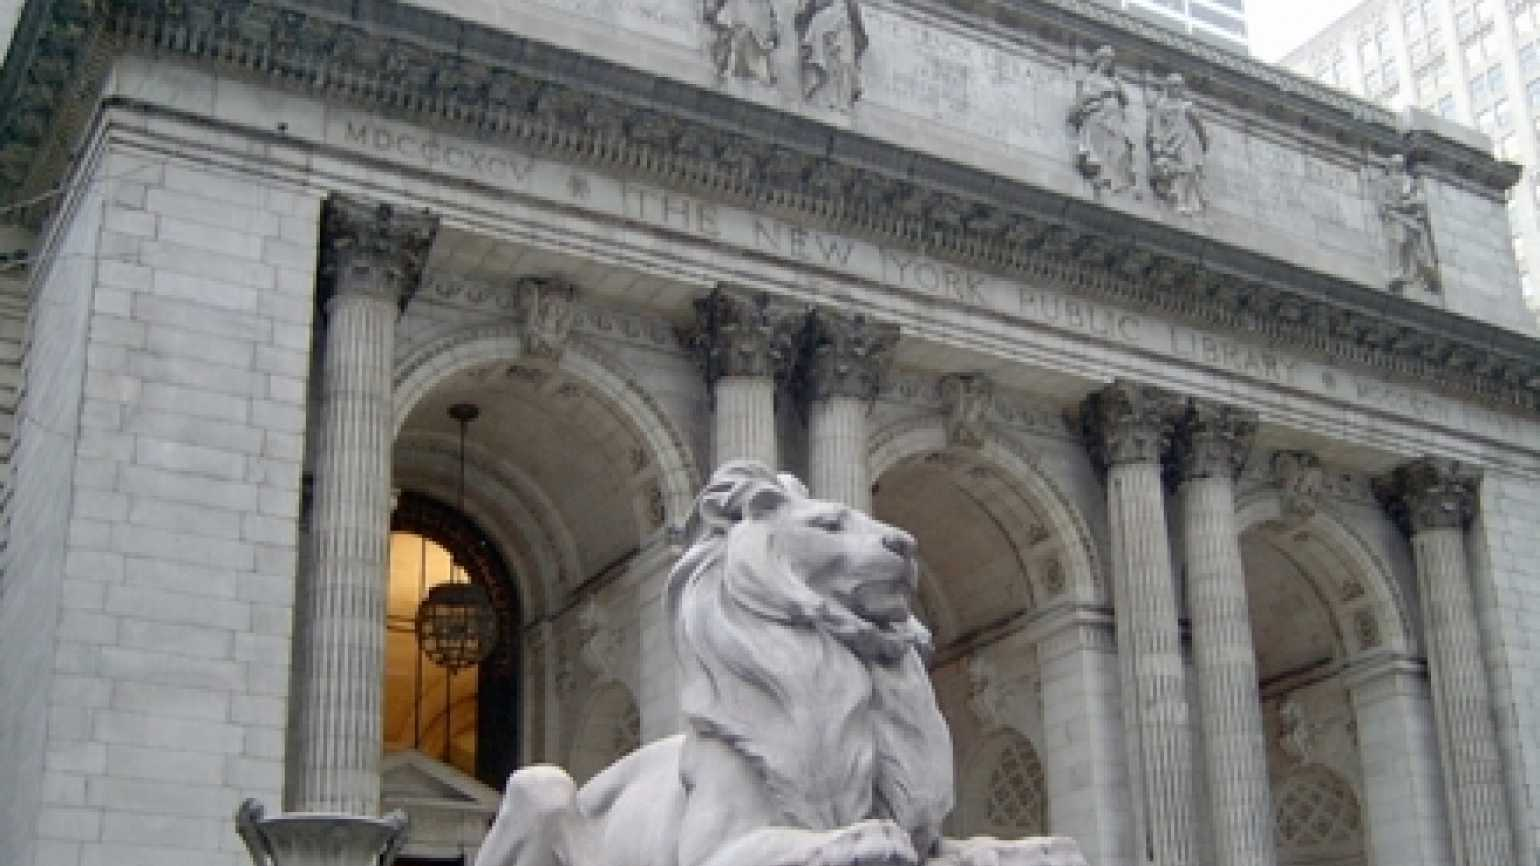 New York Public Library lions serve as an angelic reminder